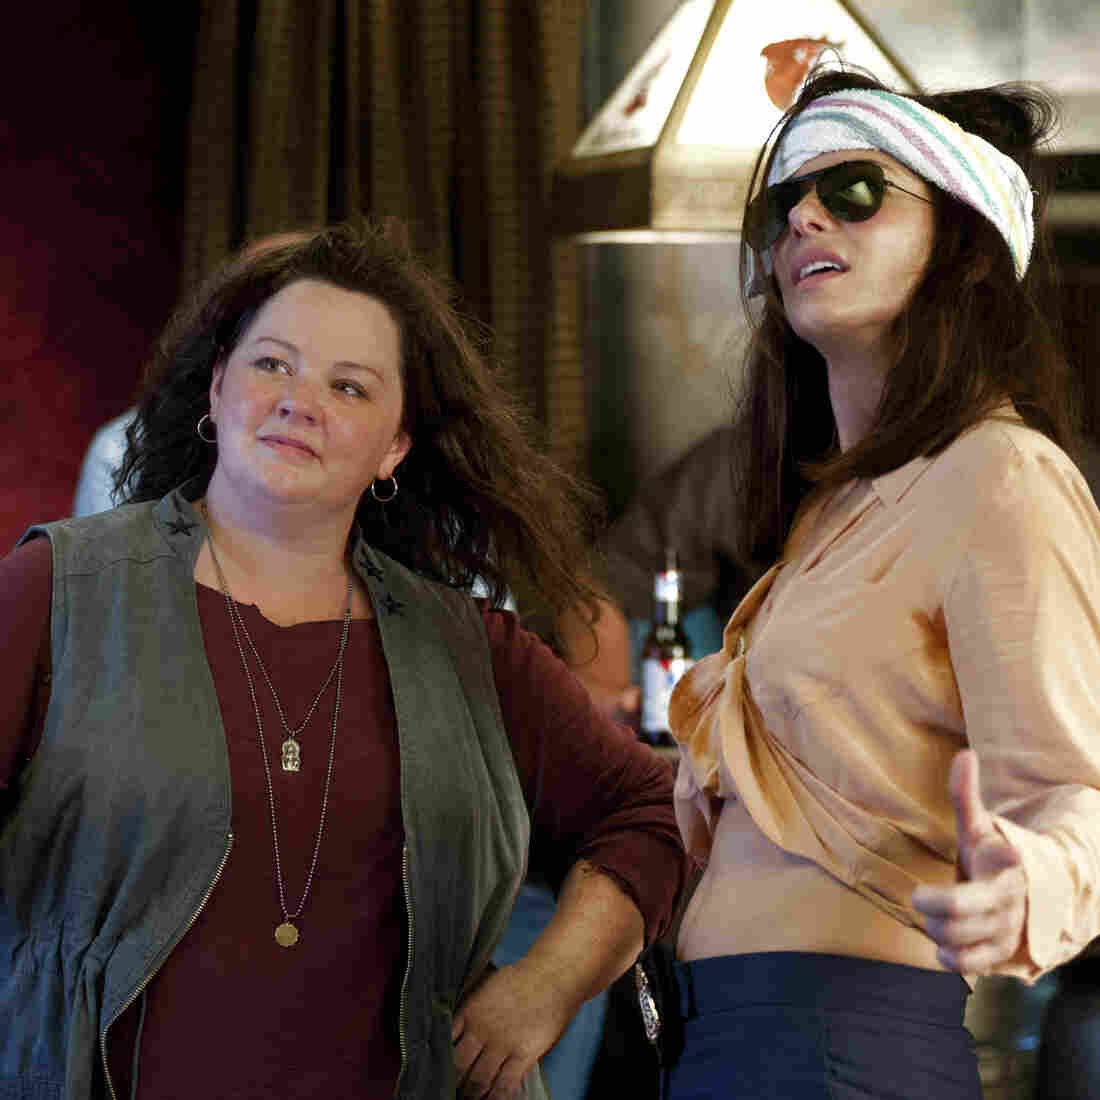 From Mannequin To Actor: Geena Davis' 'Ridiculous